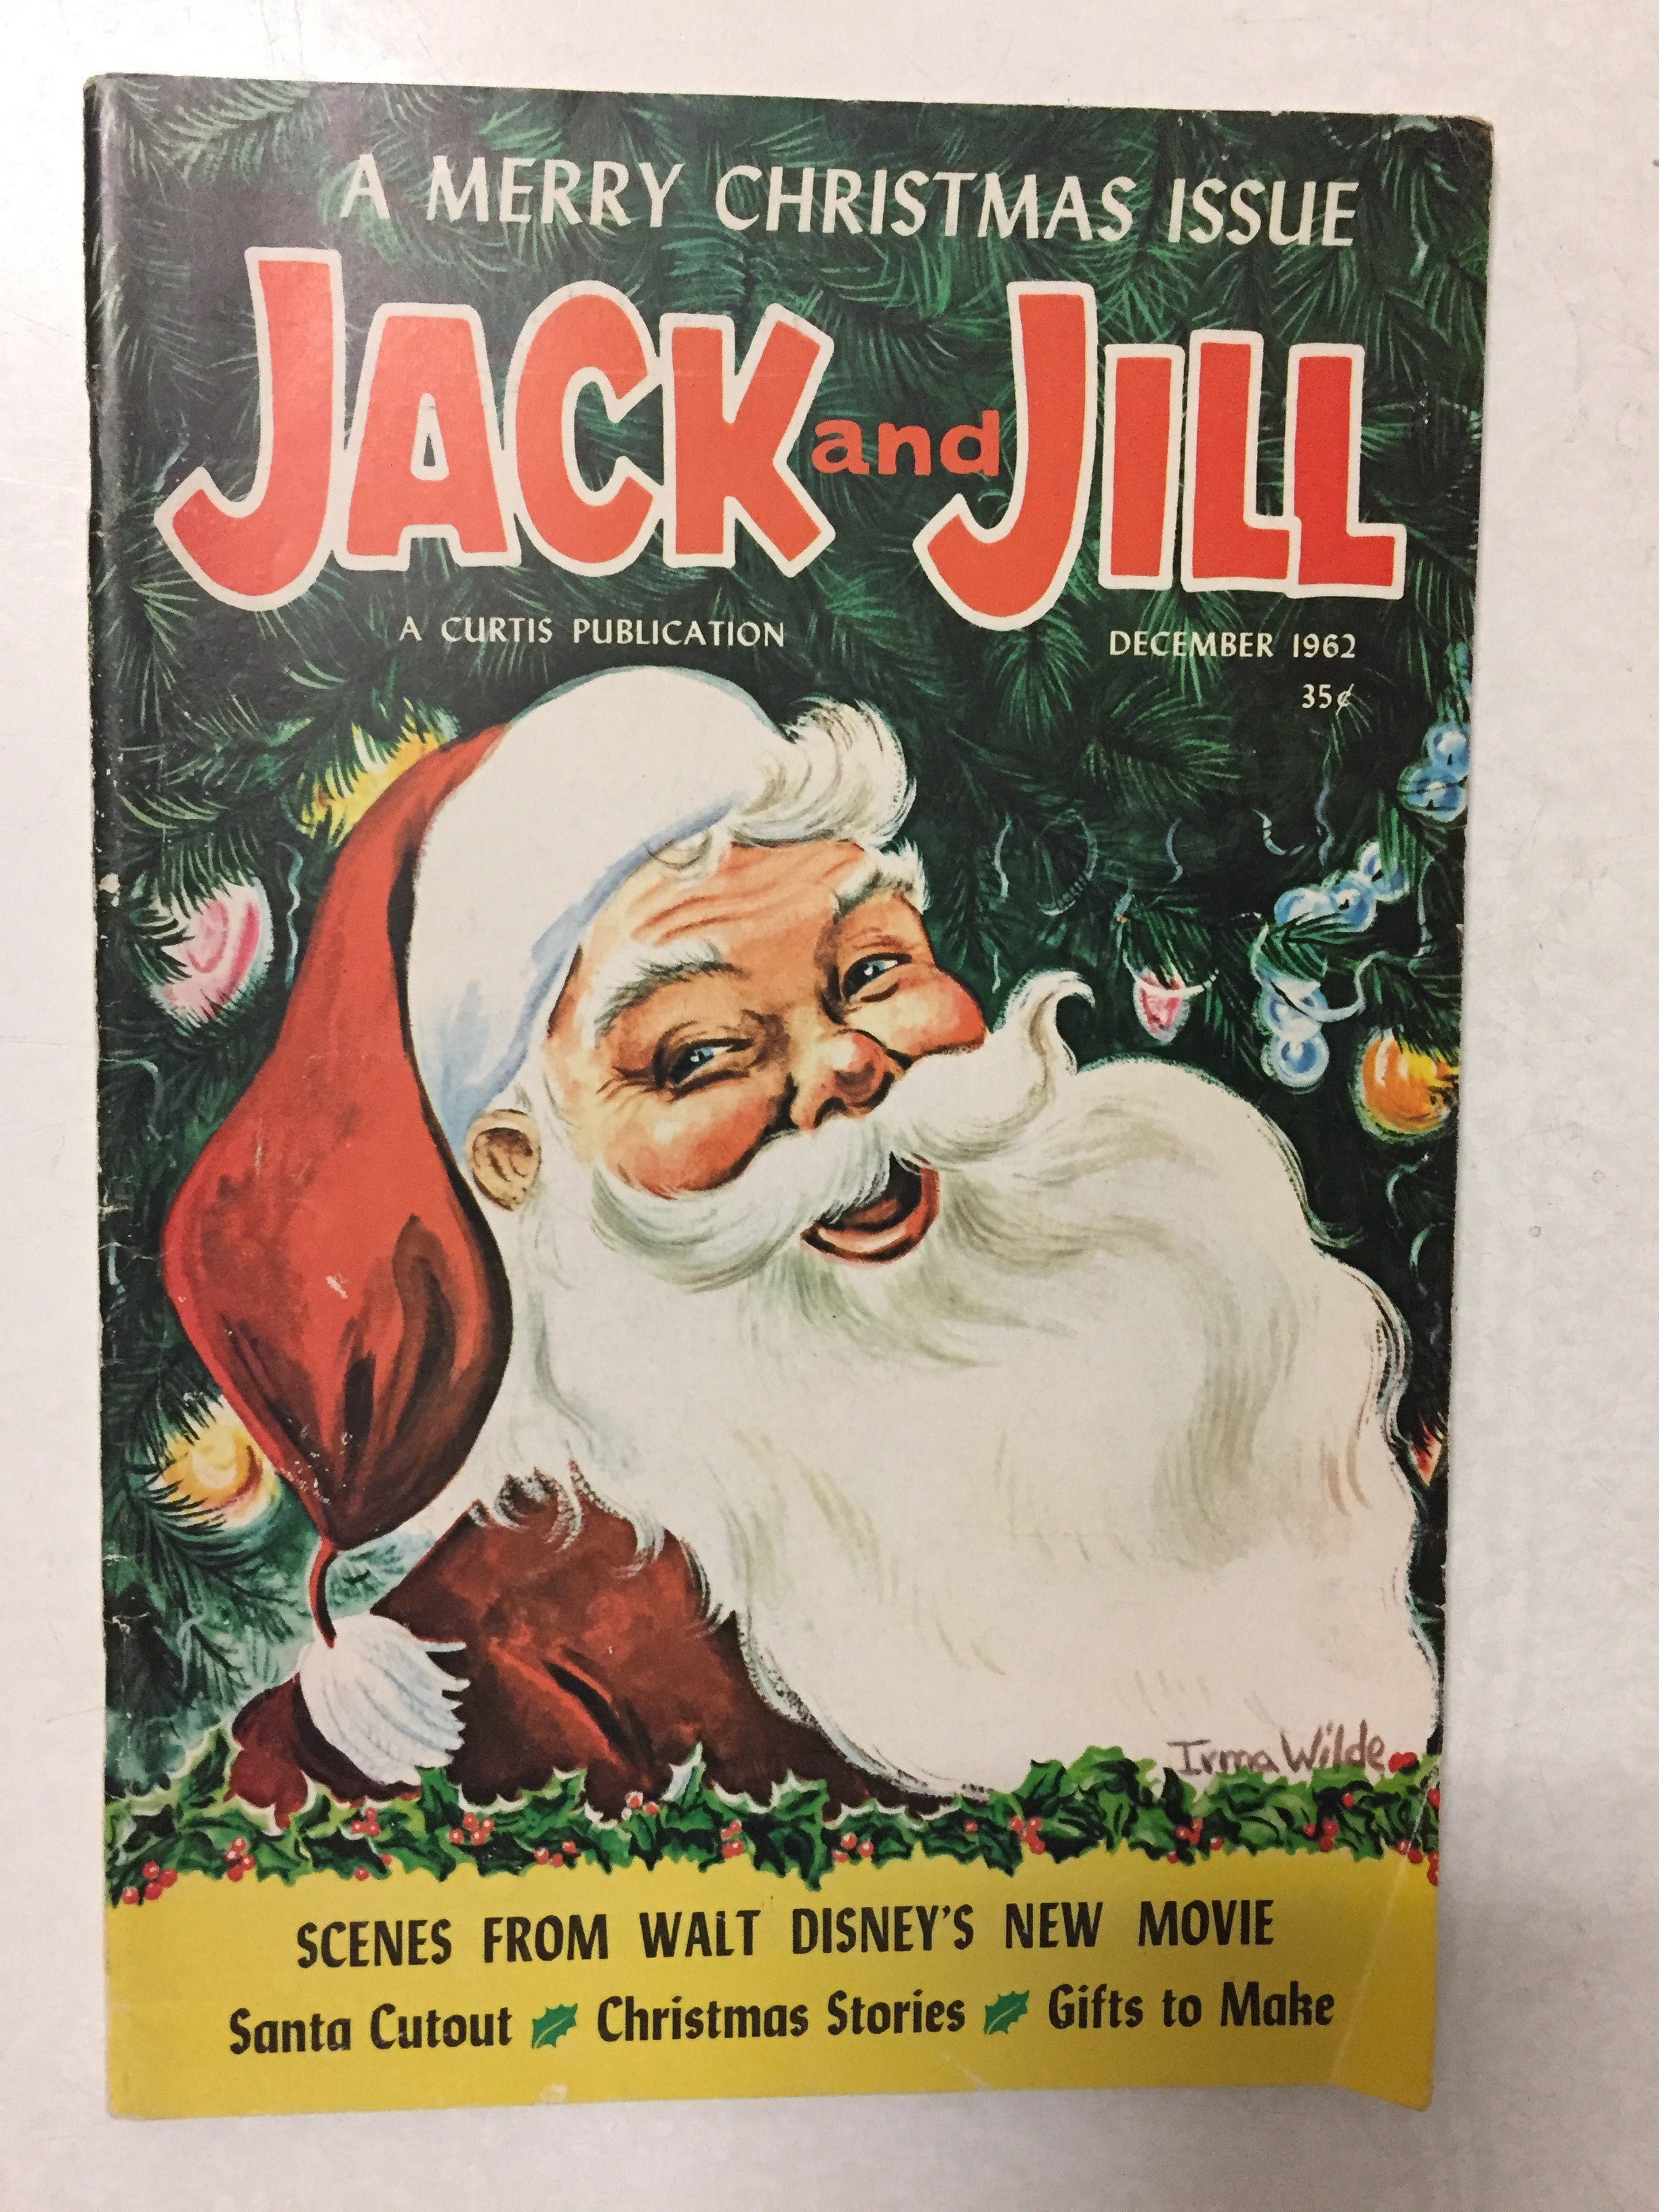 Jack and Jill Magazine A Merry Christmas Issue December 1962 - Slickcatbooks